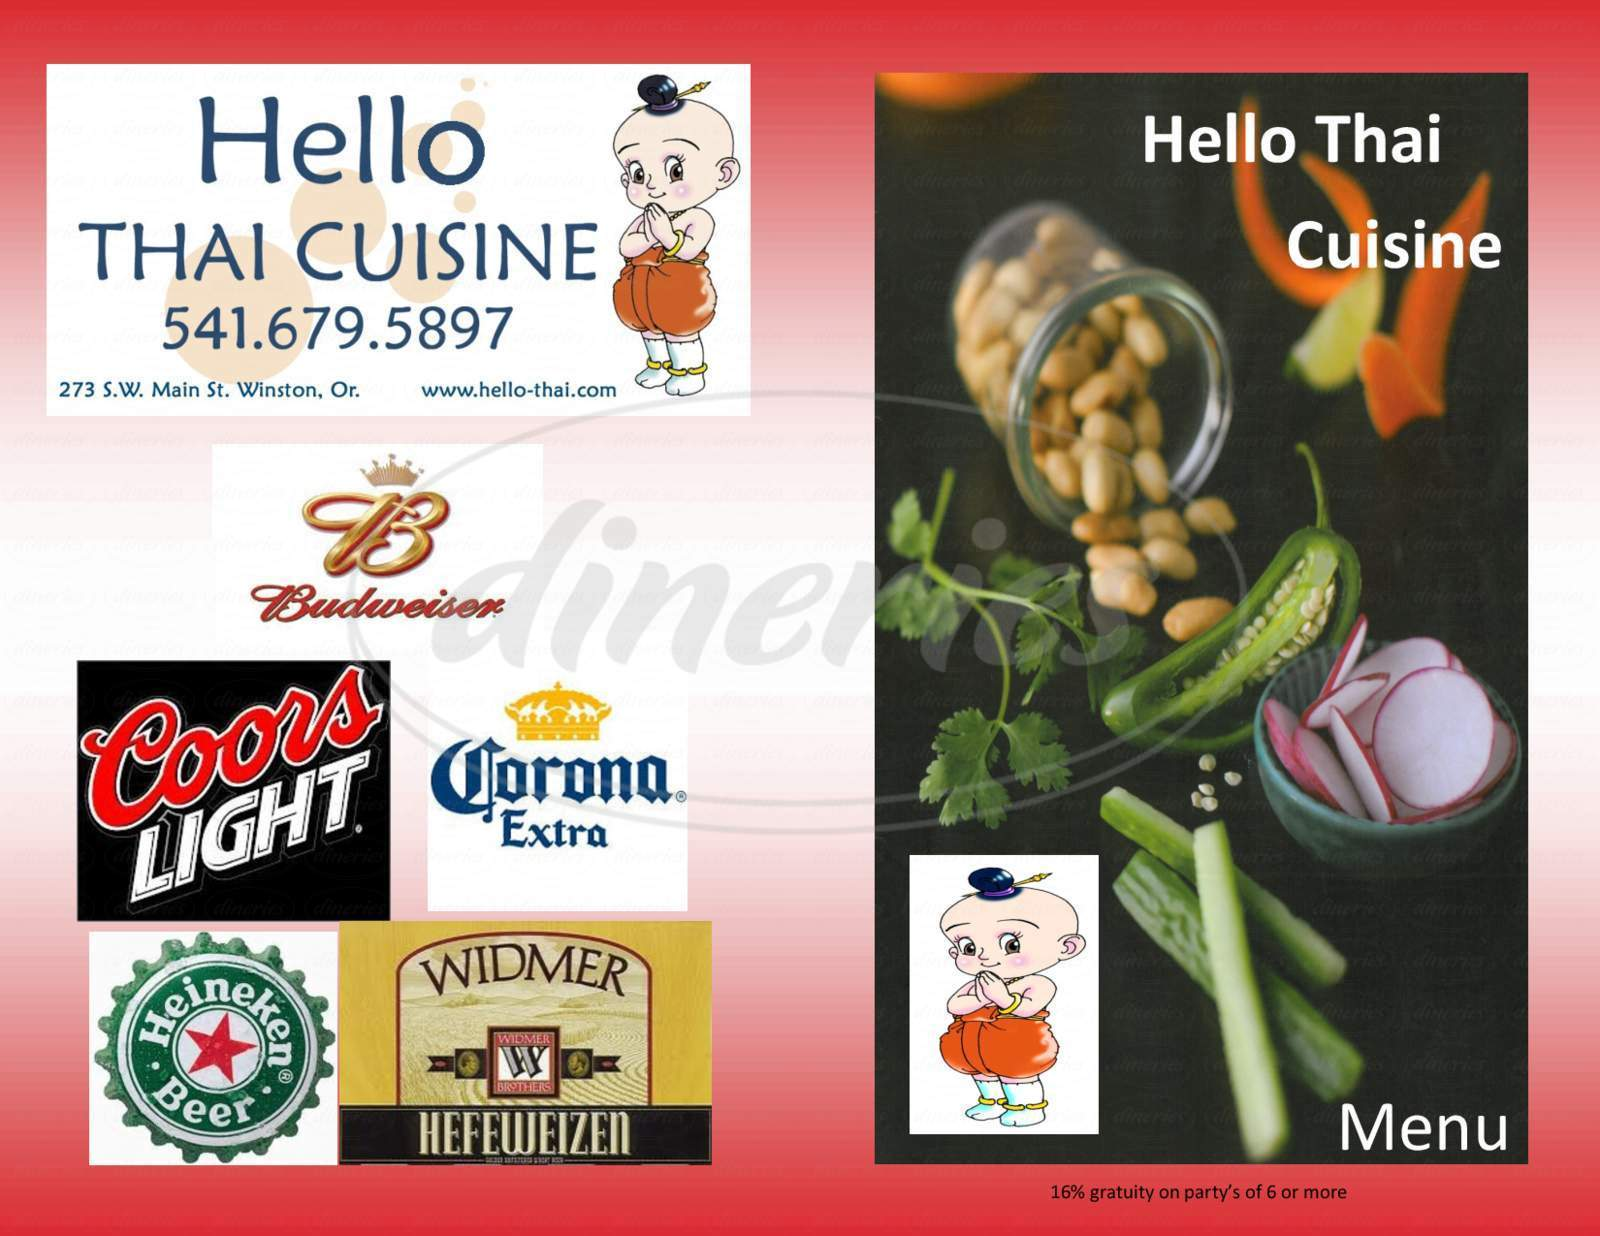 menu for Hello Thai Cuisine